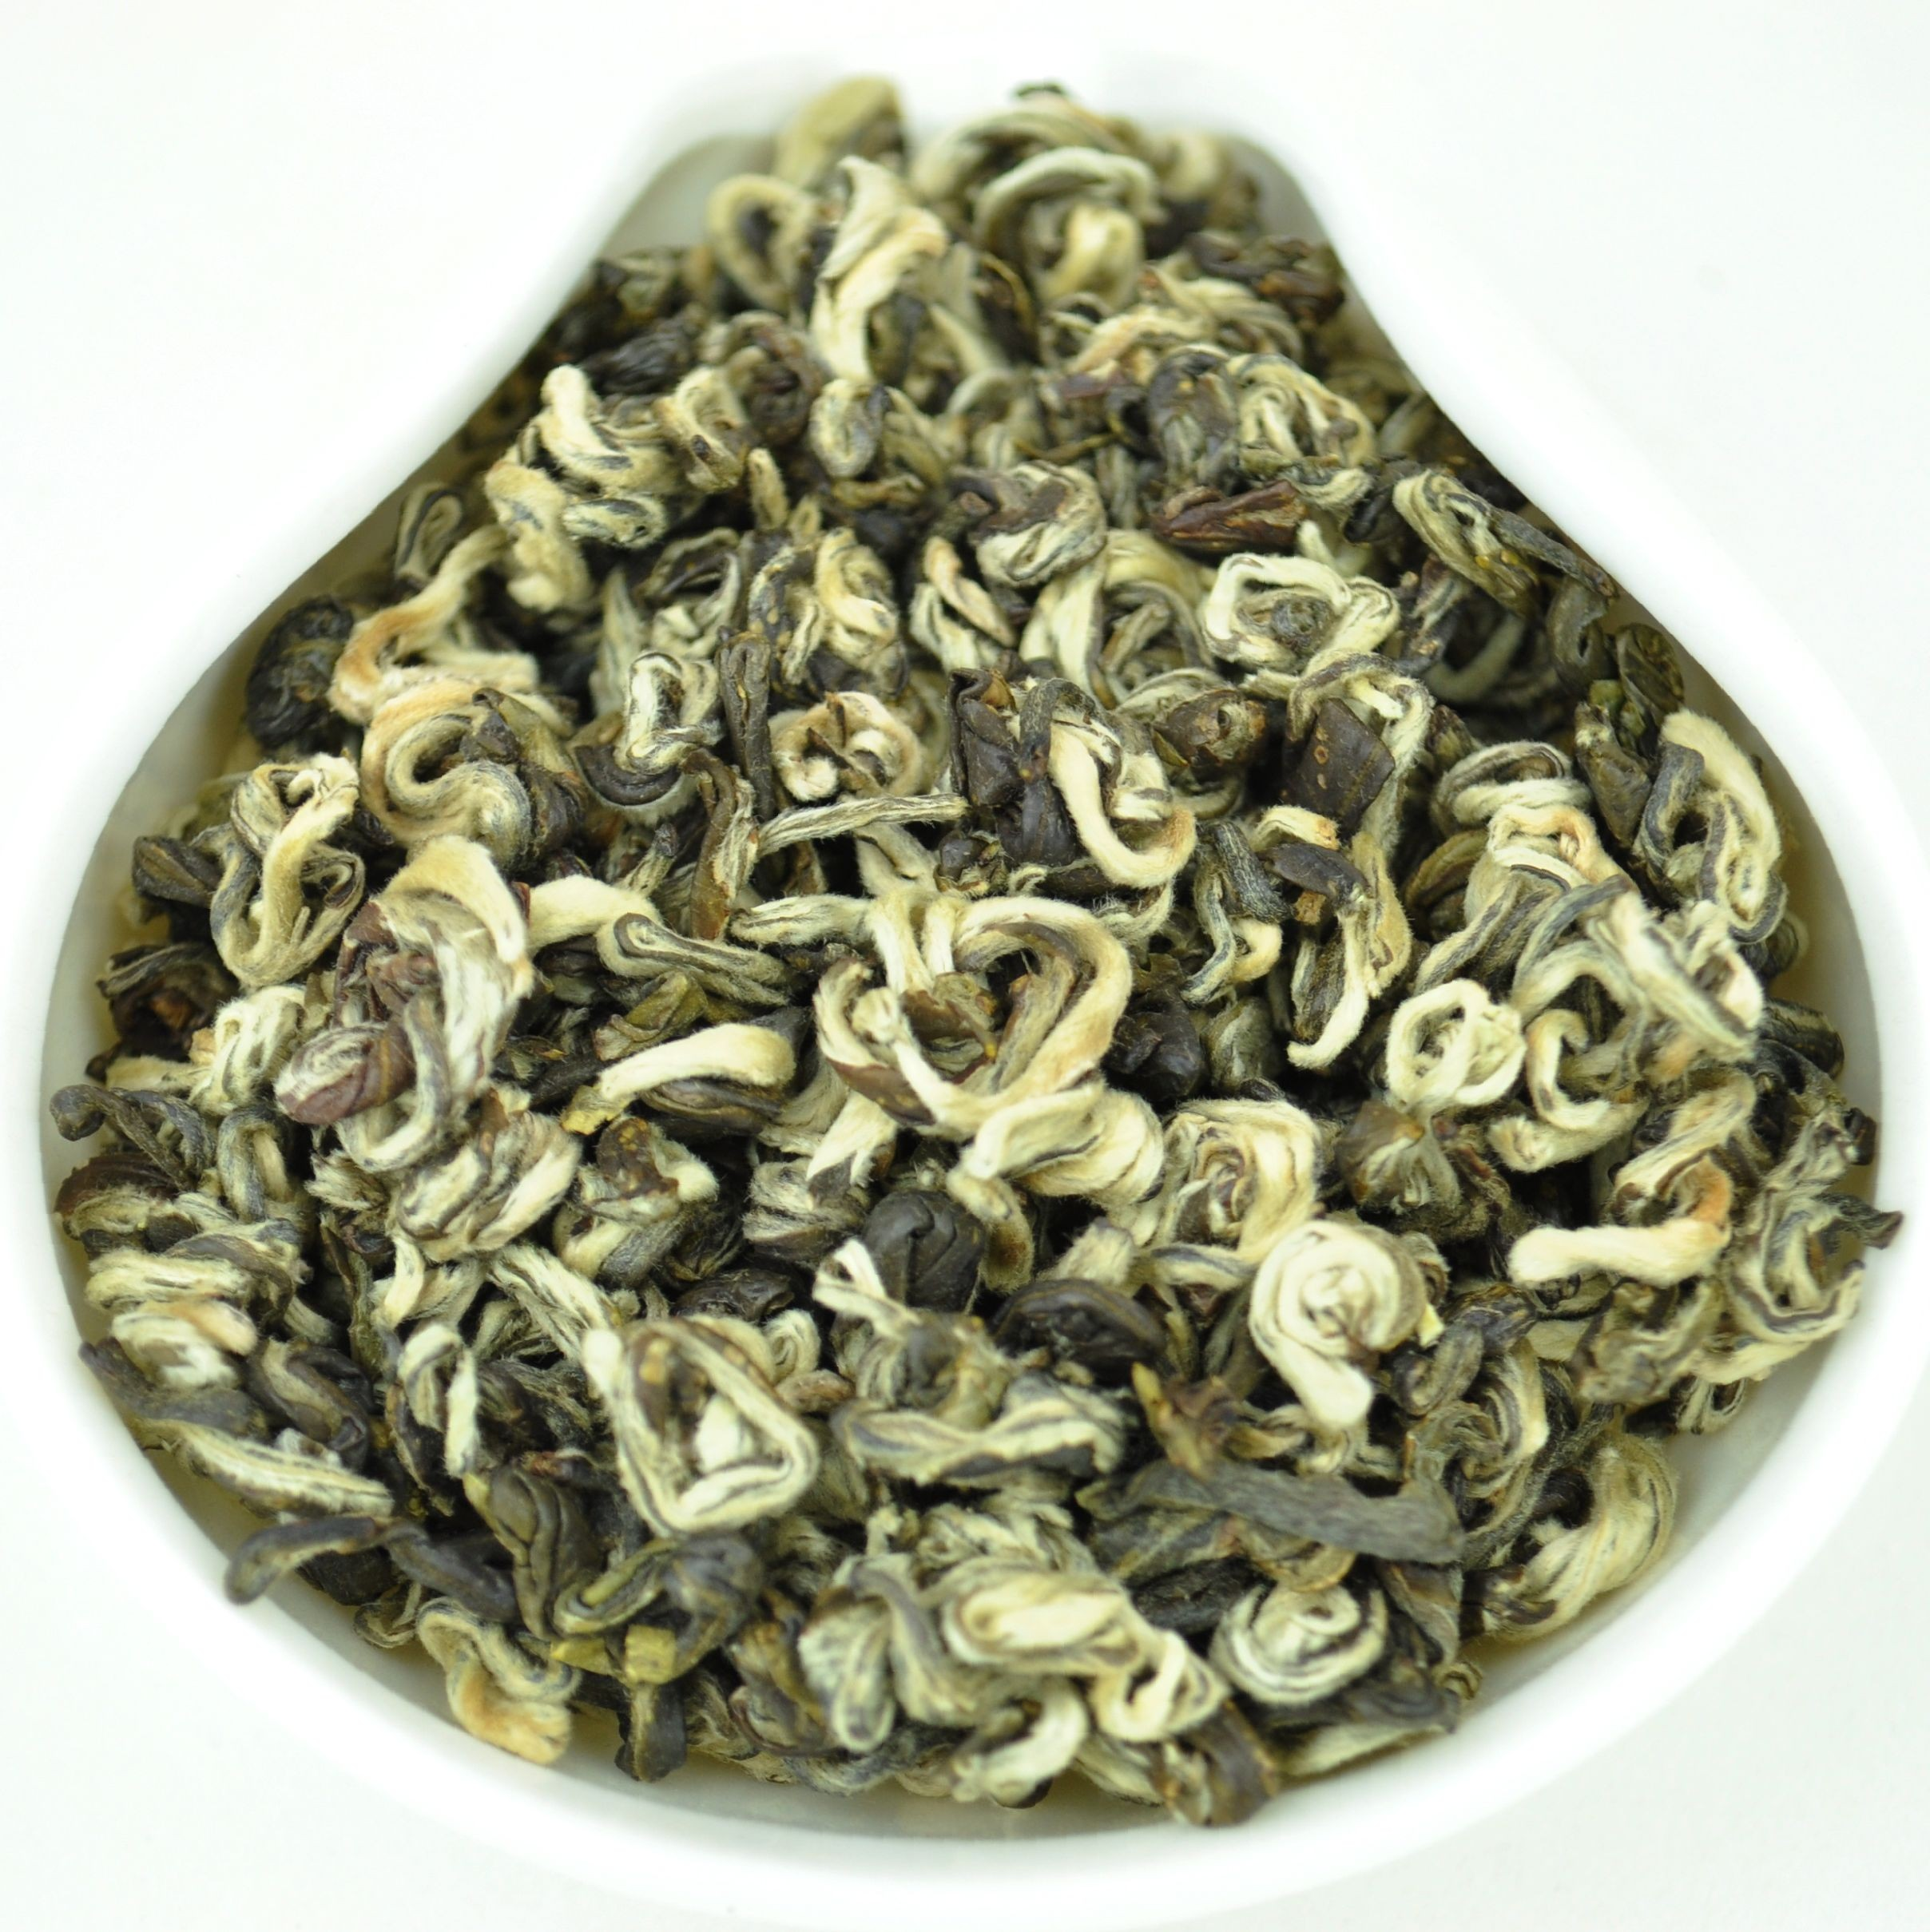 Yunnan Early Spring Bi Luo Chun Green tea * Spring 2016